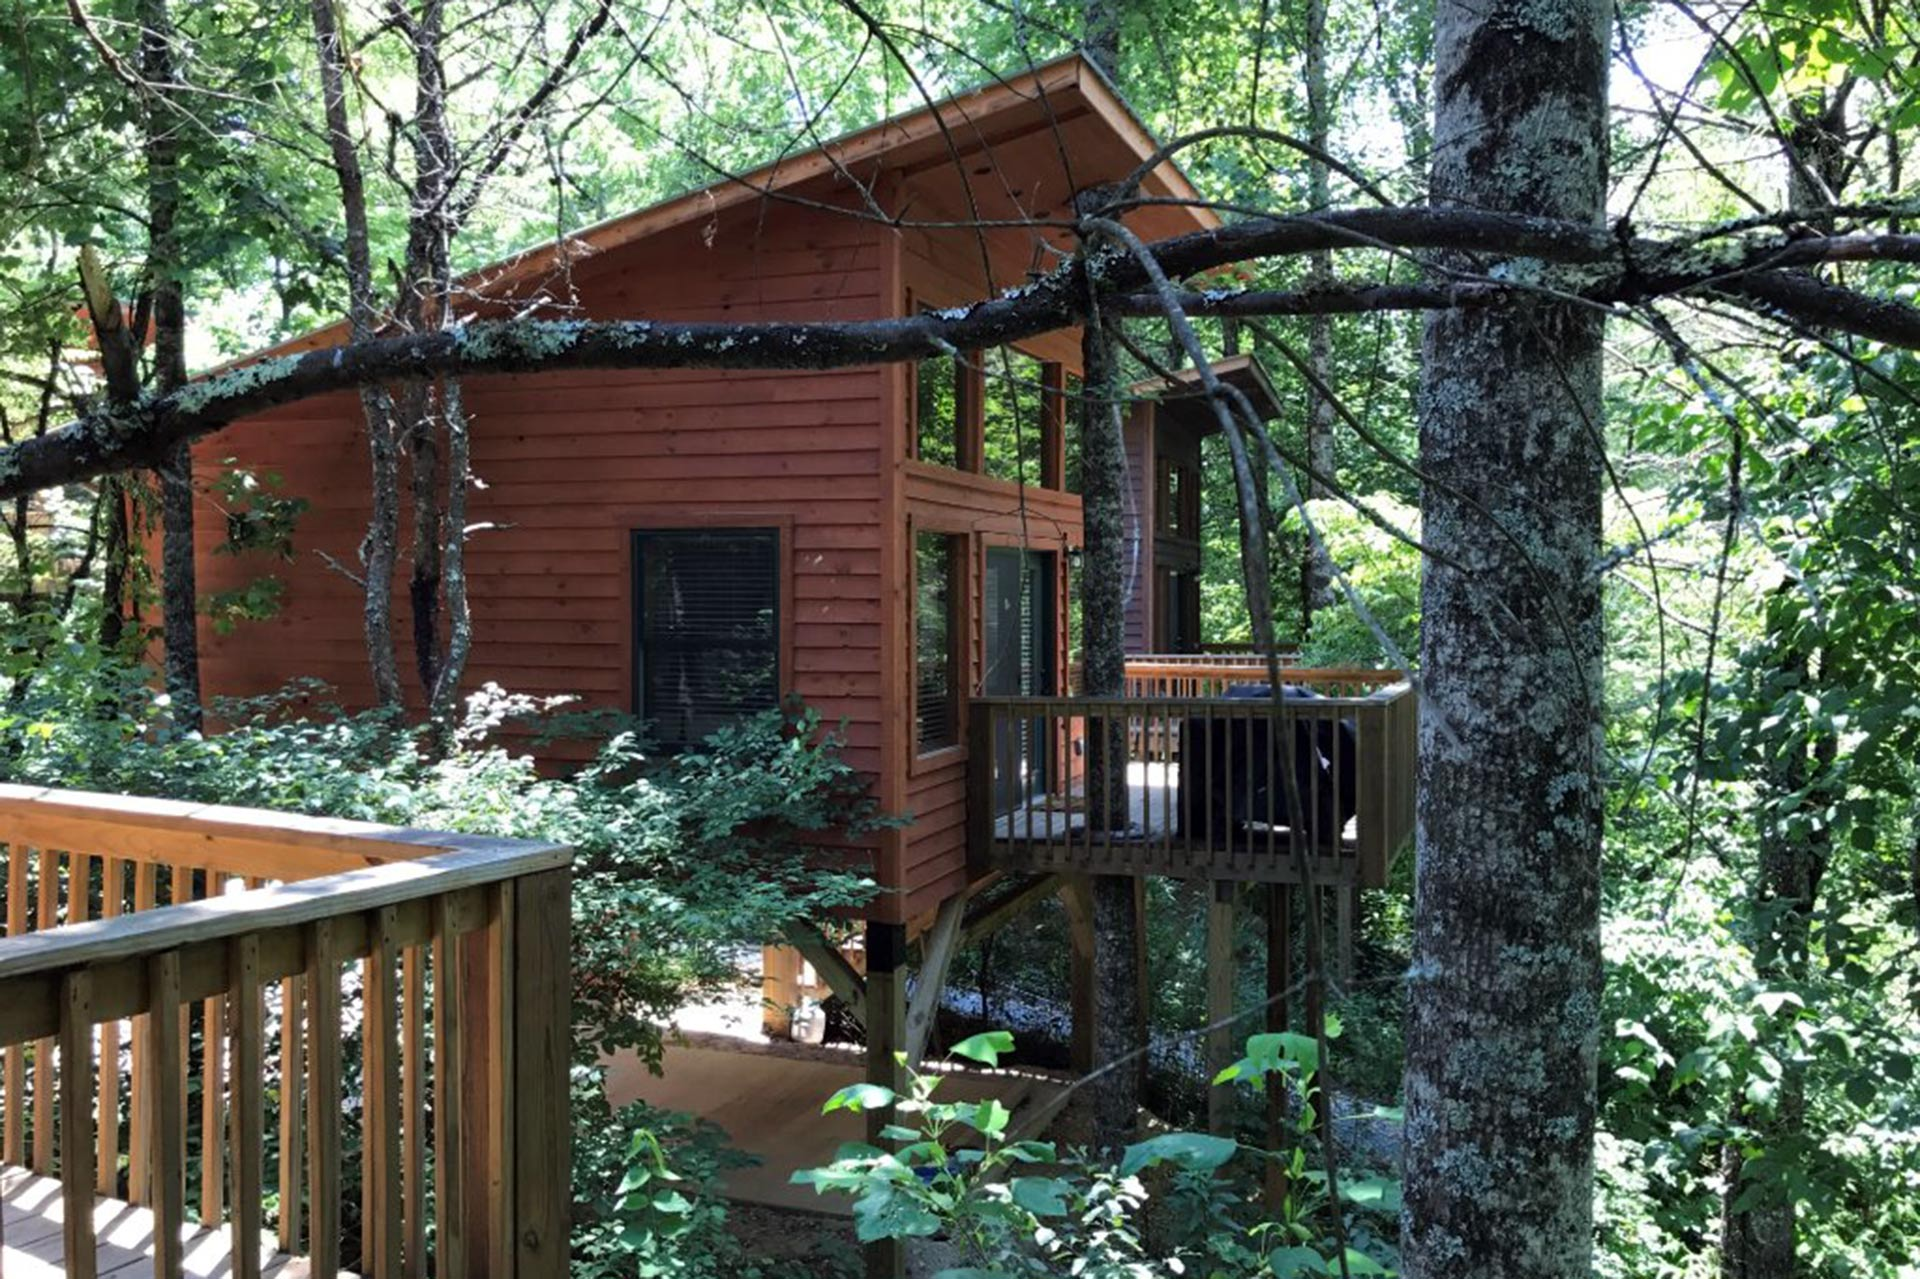 River's Edge Treehouse Resort in North Carolina; Courtesy of River's Edge Treehouse Resort